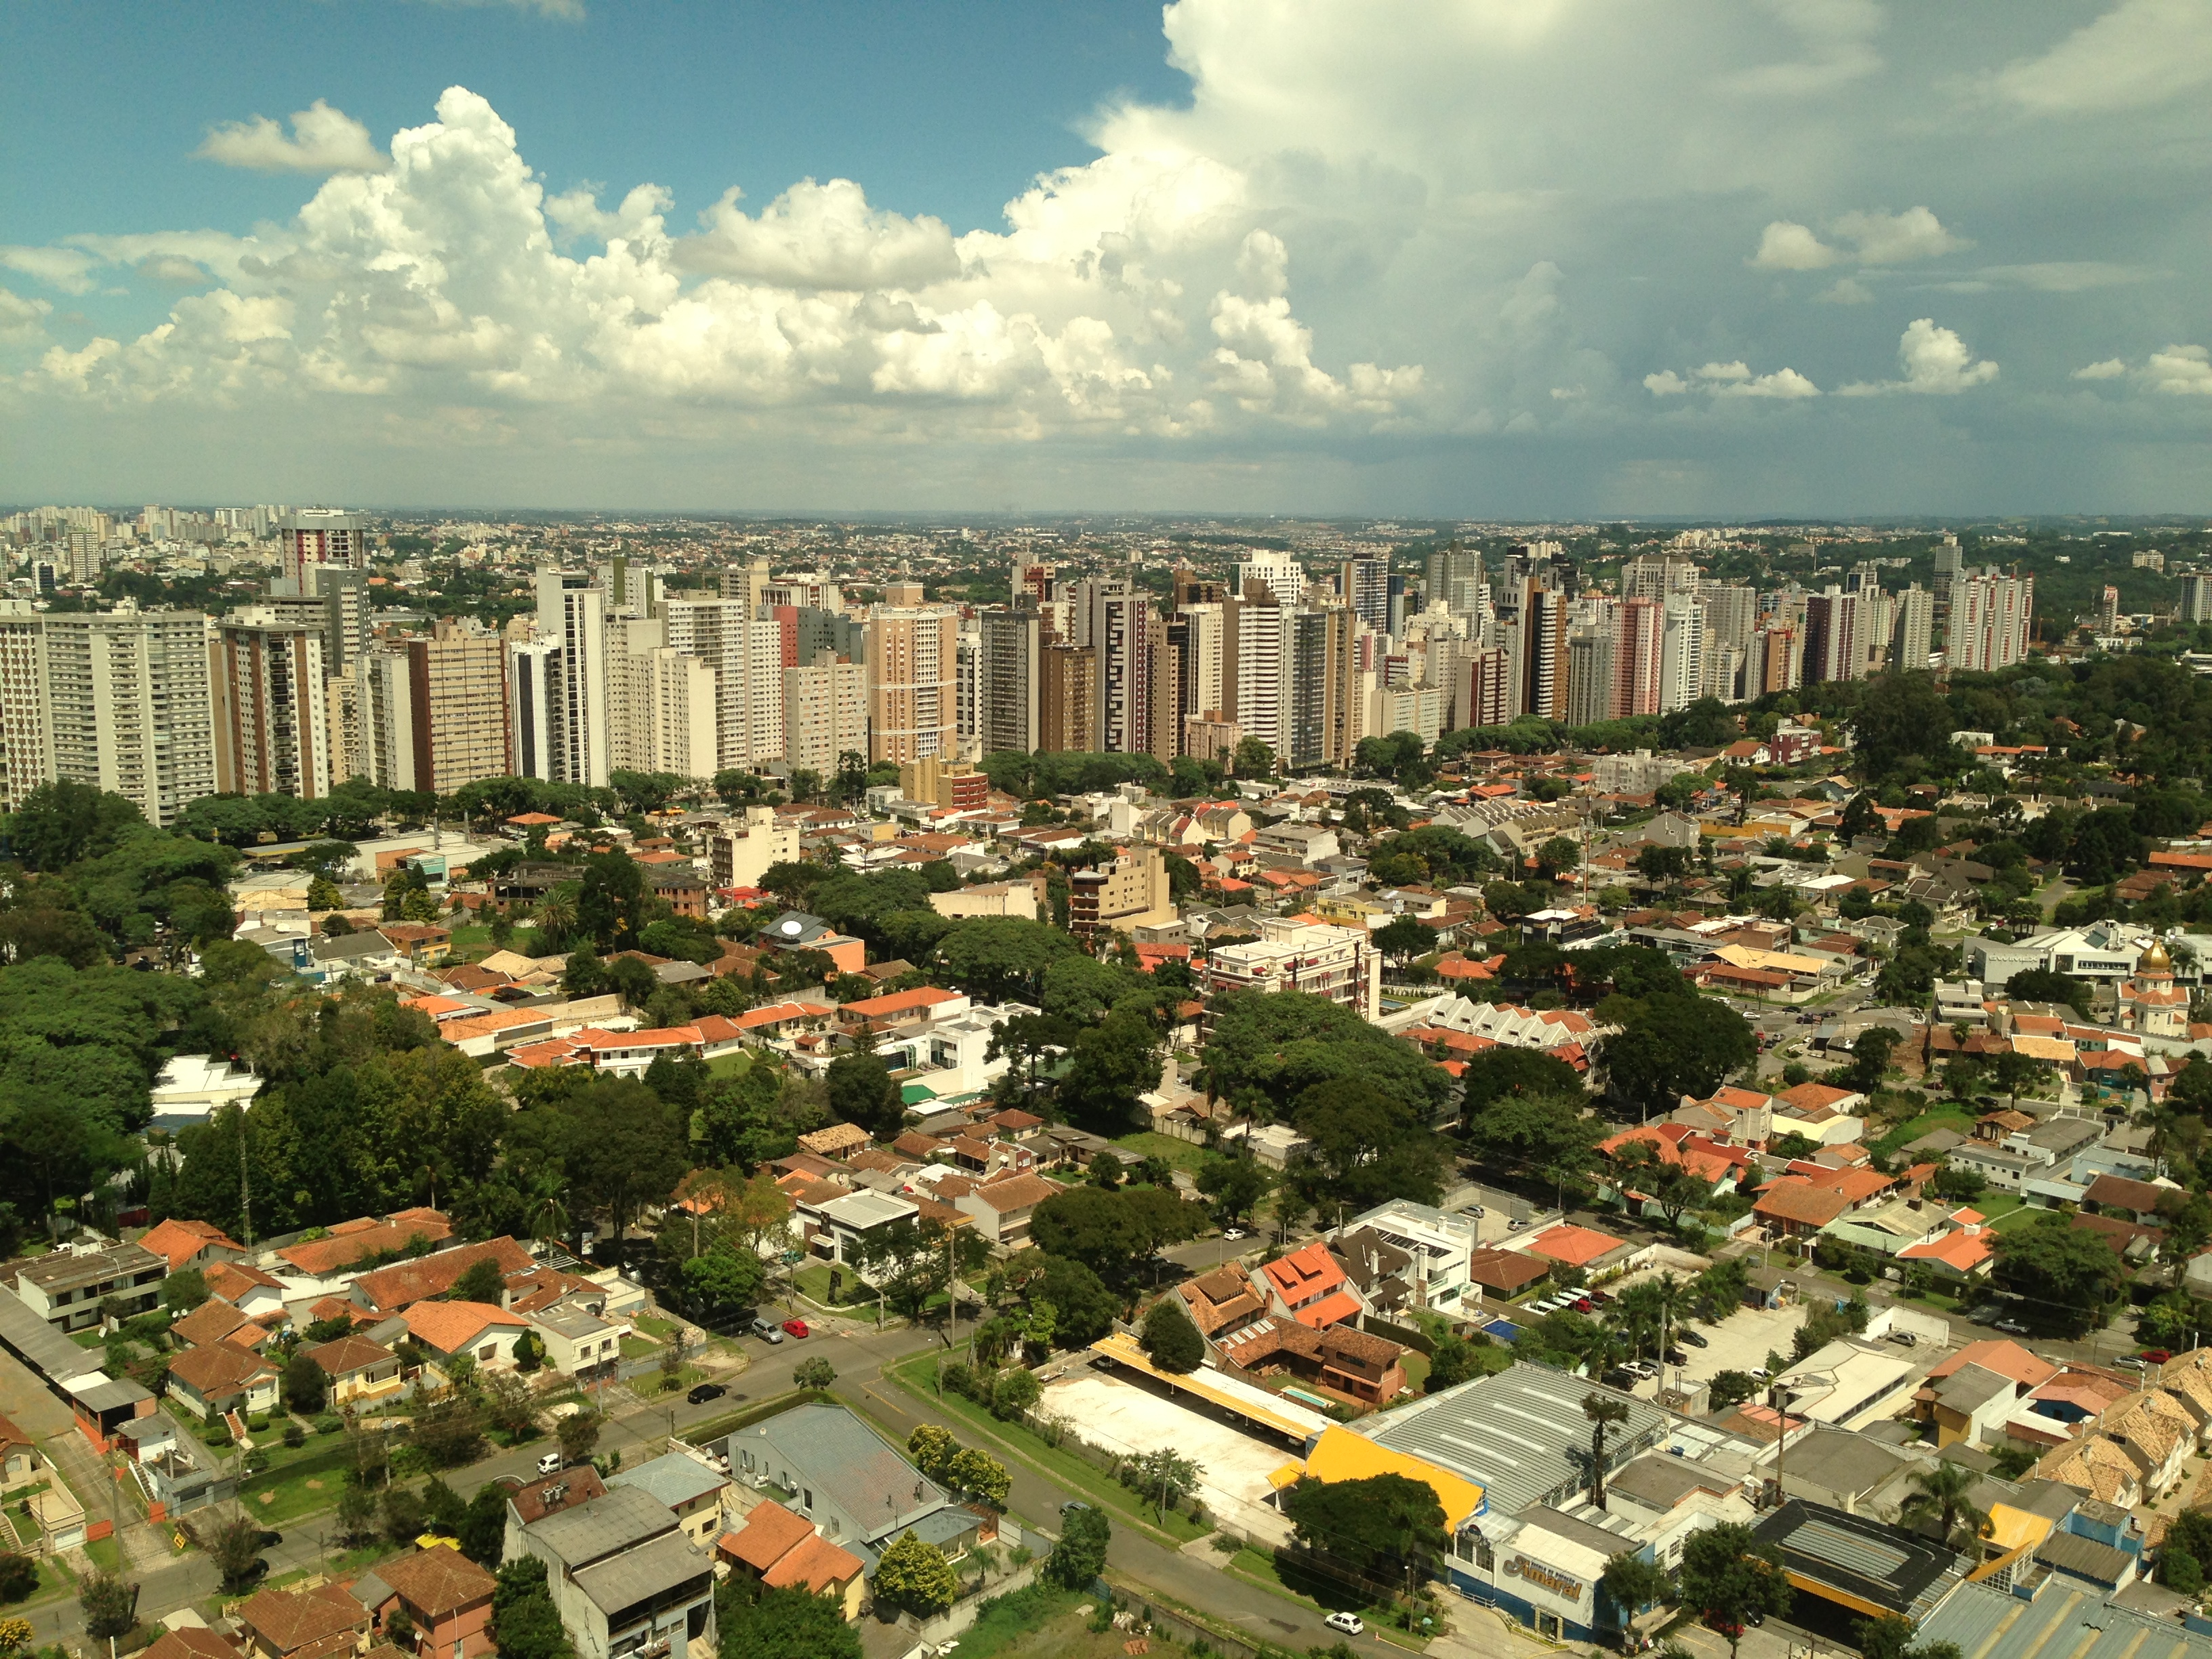 Curitiba: One of Brazil's Most Impressive Cities ...